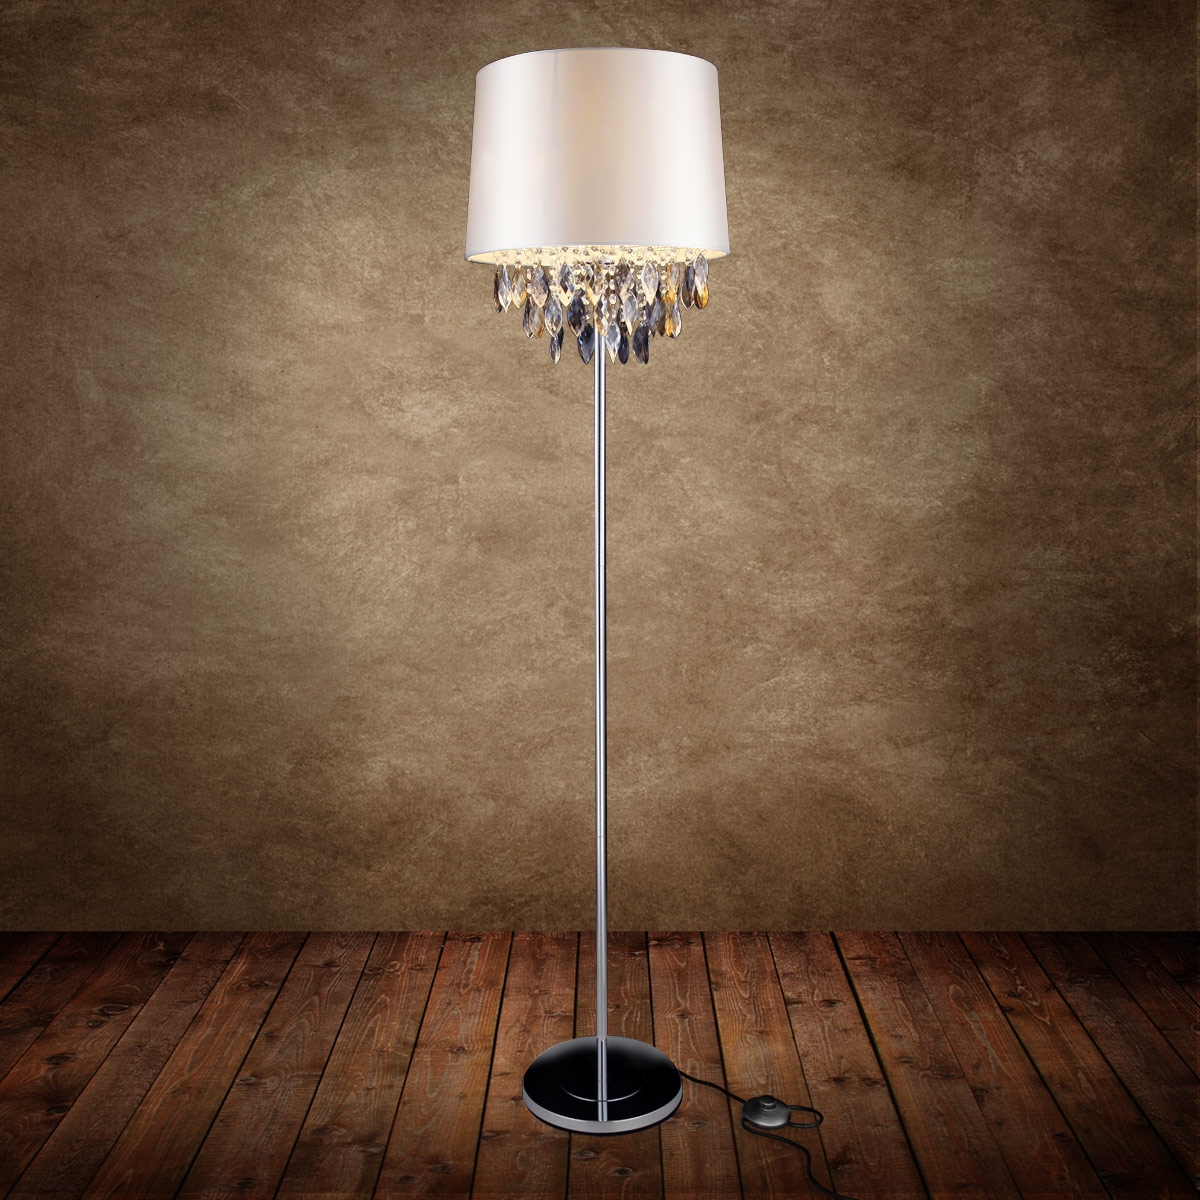 lux pro moderne clairage vertical lampadaire lampe clairage de salon lampe stand ebay. Black Bedroom Furniture Sets. Home Design Ideas